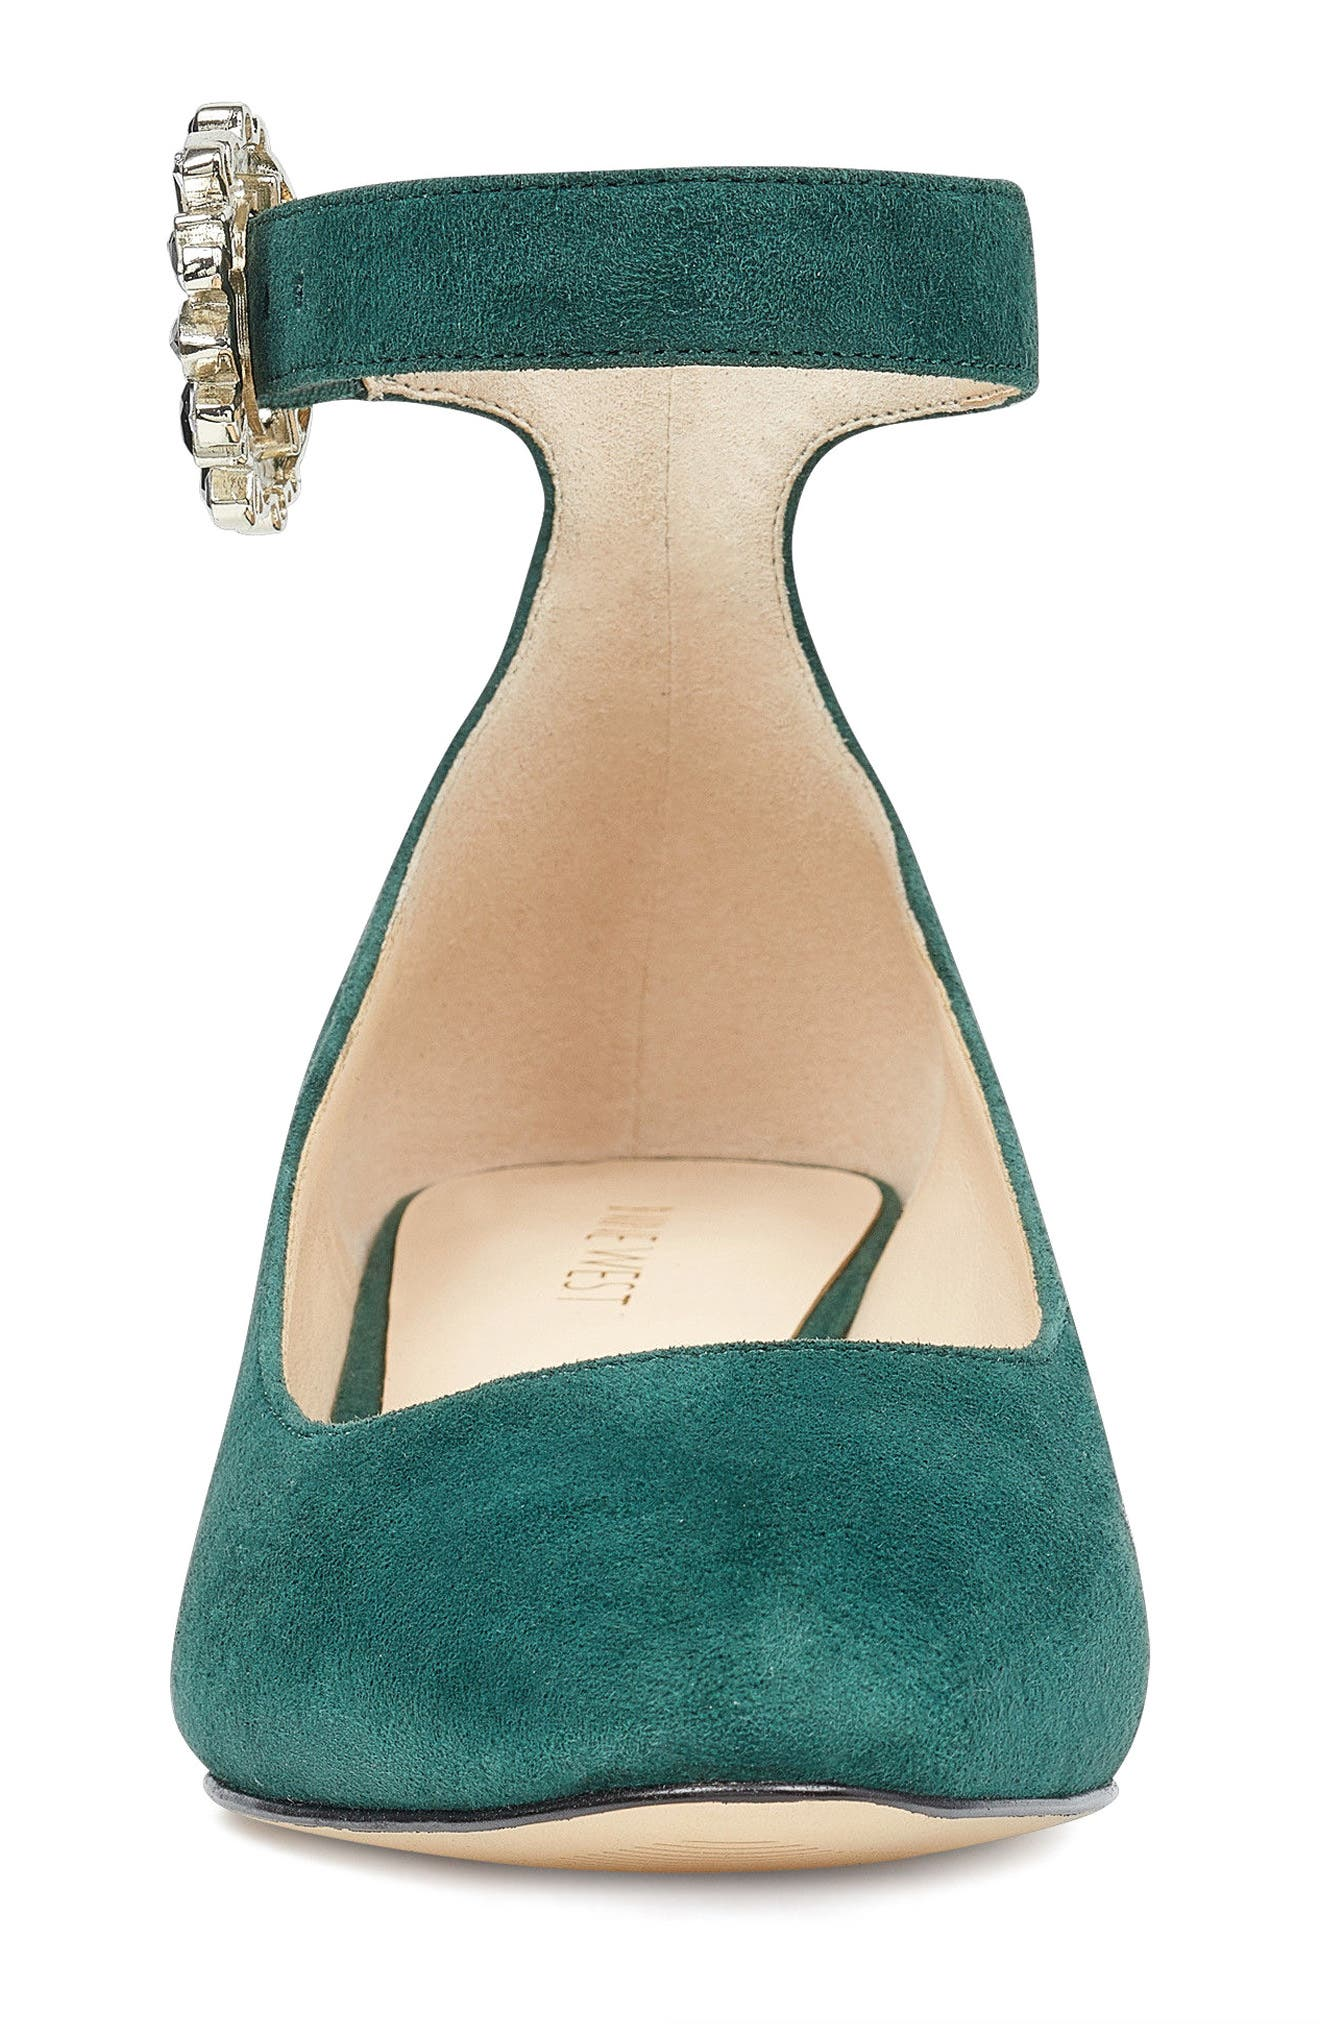 Bartly Ankle Strap Pump,                             Alternate thumbnail 12, color,